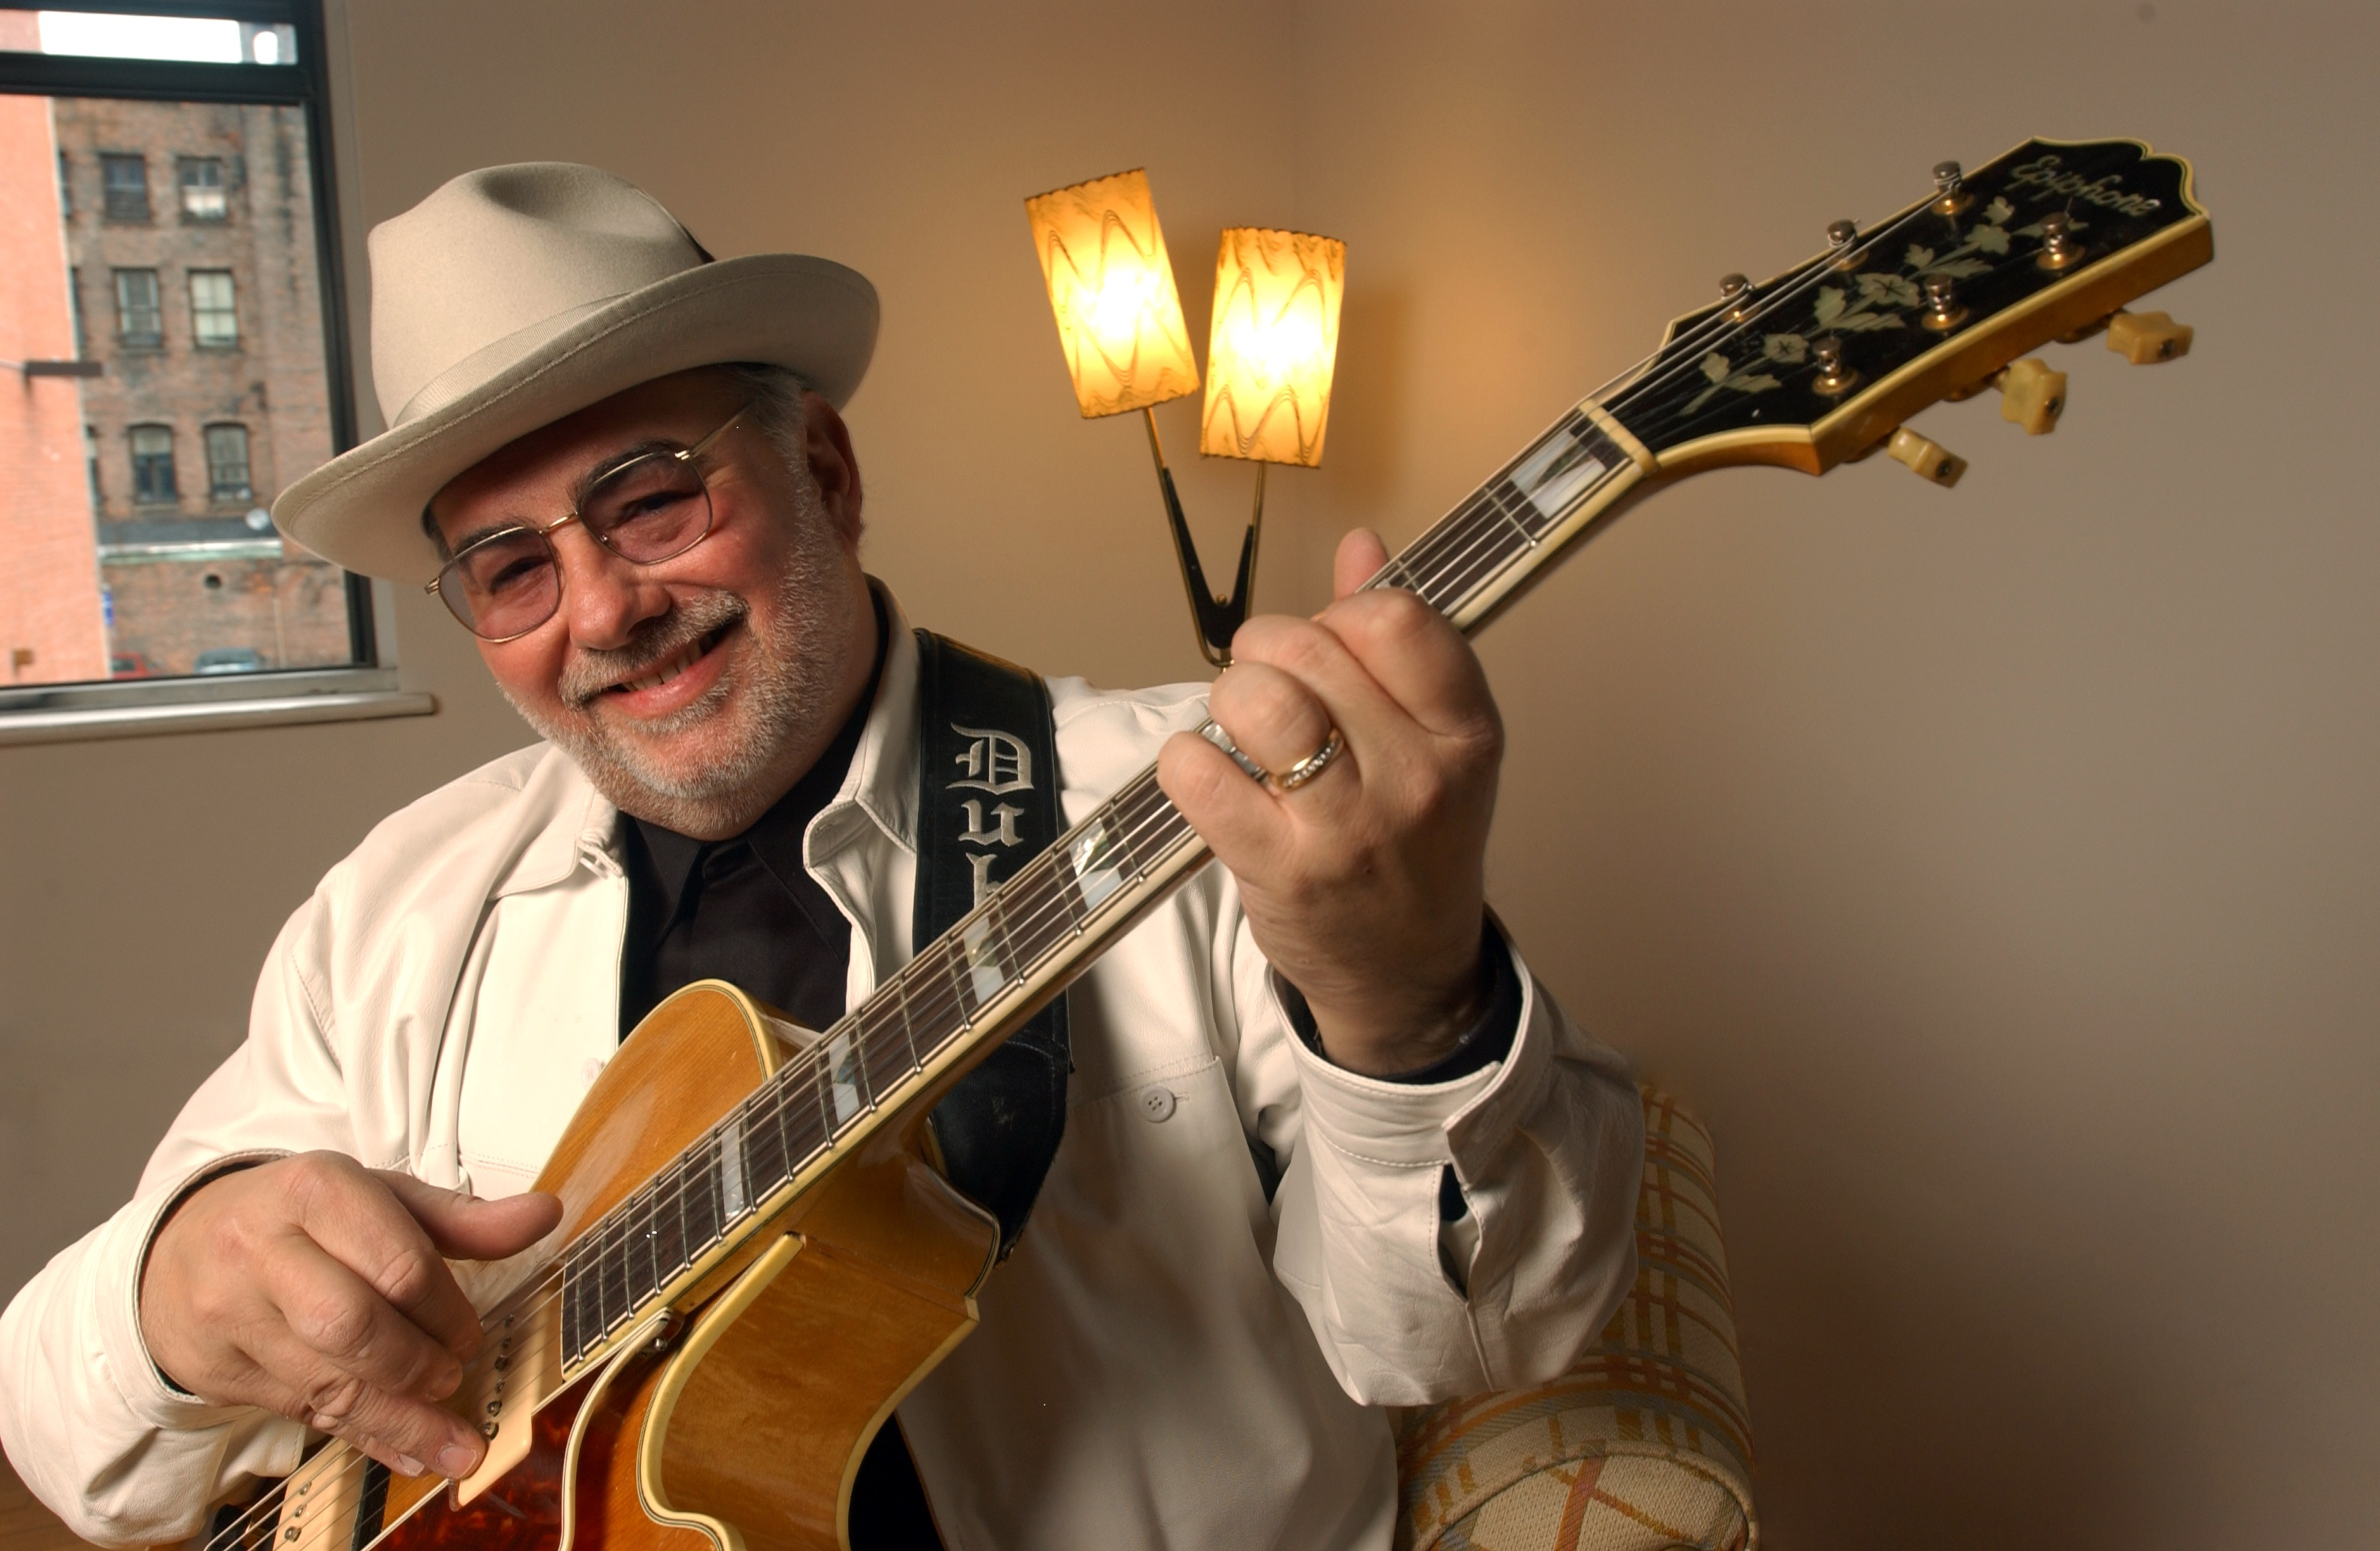 Ear Worms, the New Album from Award-Winning Guitarist Duke Robillard